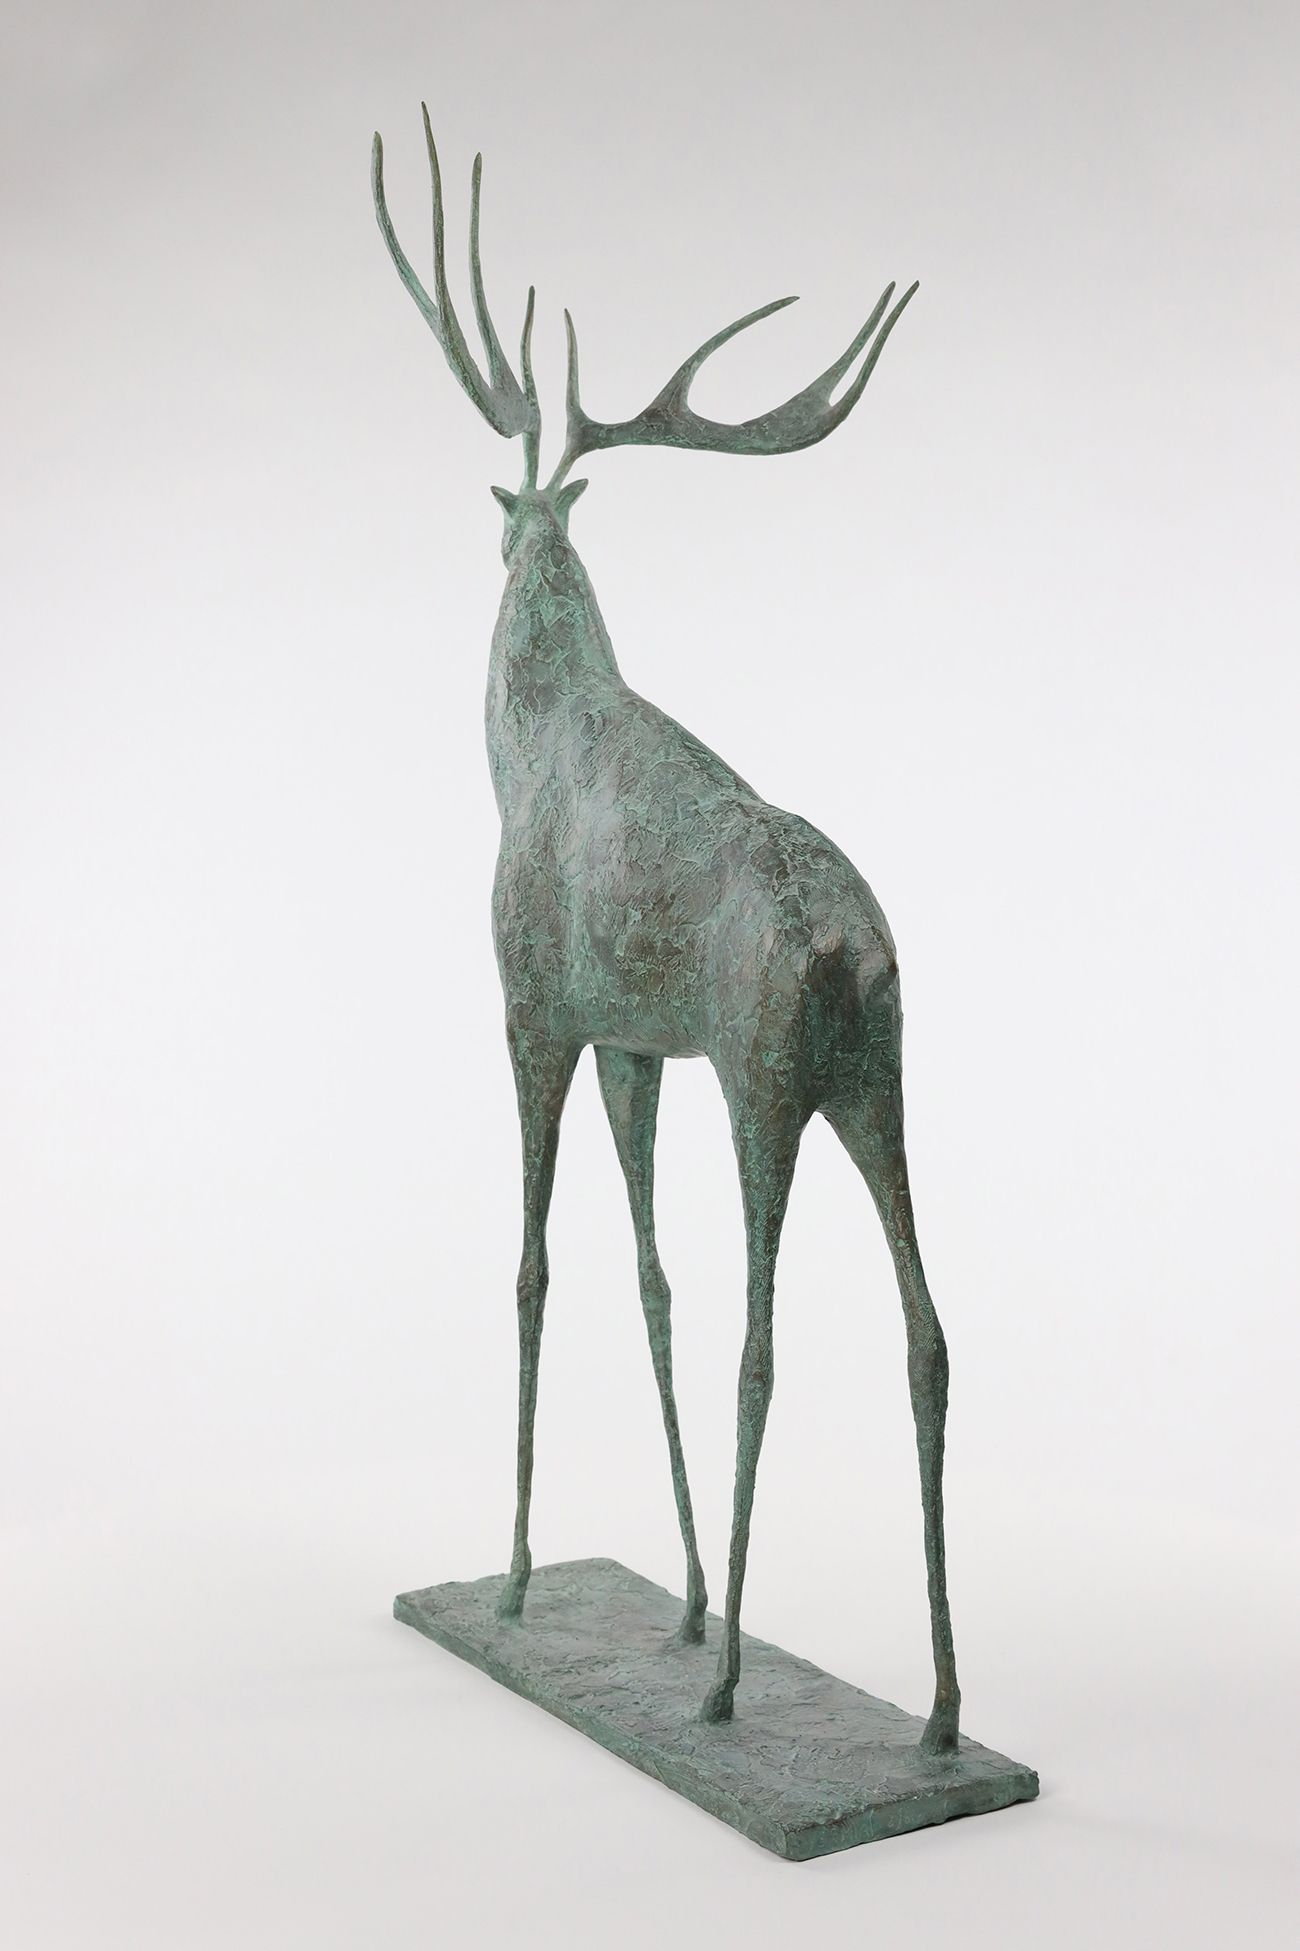 Deer II,Pierre Yermia,Sculpture, detail 3